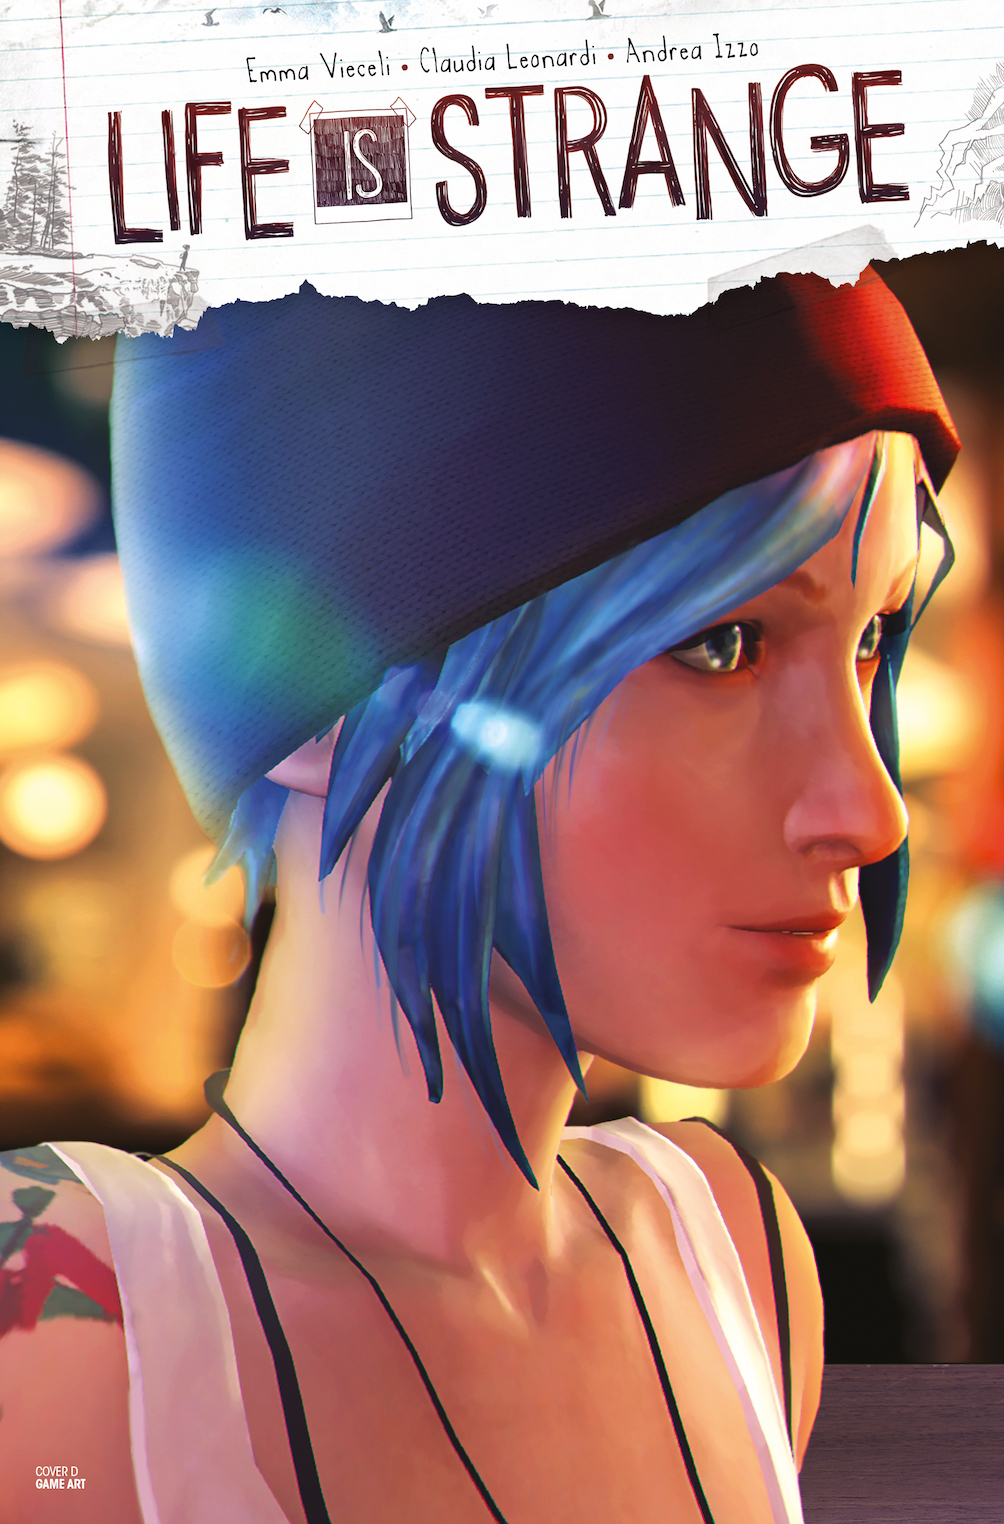 LIFE IS STRANGE #1 CVR D CHLOE GAME ART